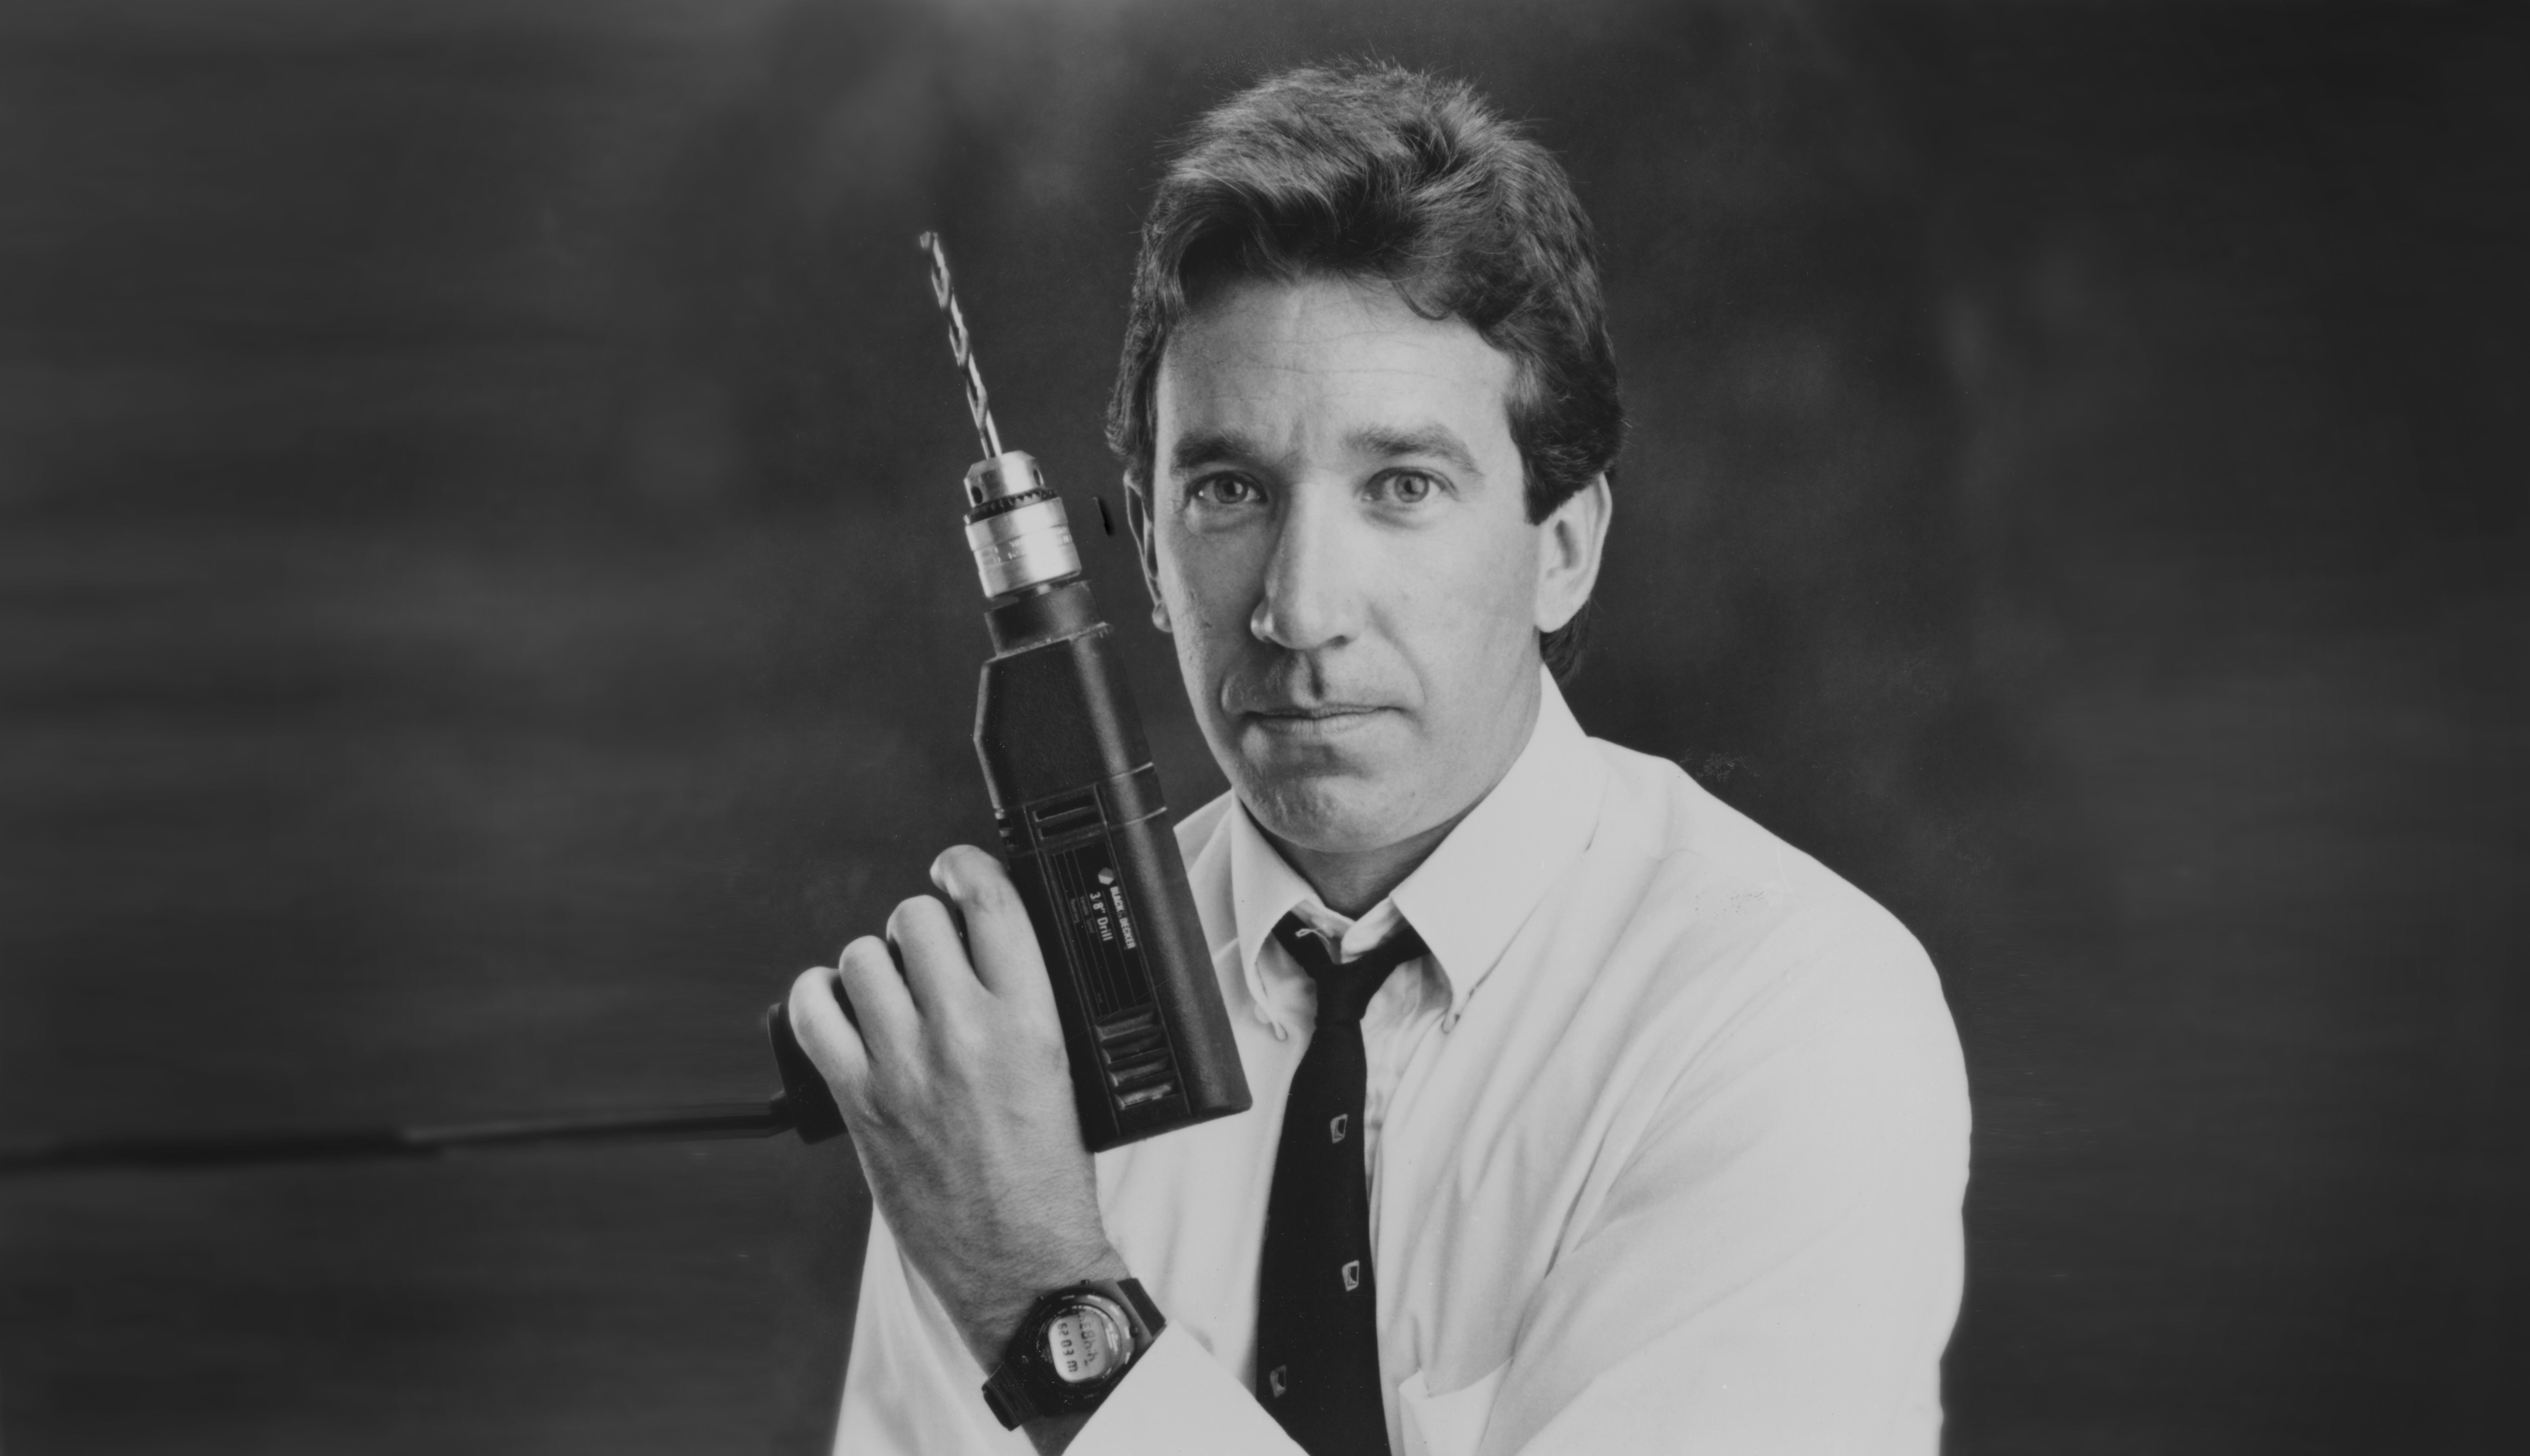 Tim allen wallpapers images photos pictures backgrounds for Wallpaper home improvement